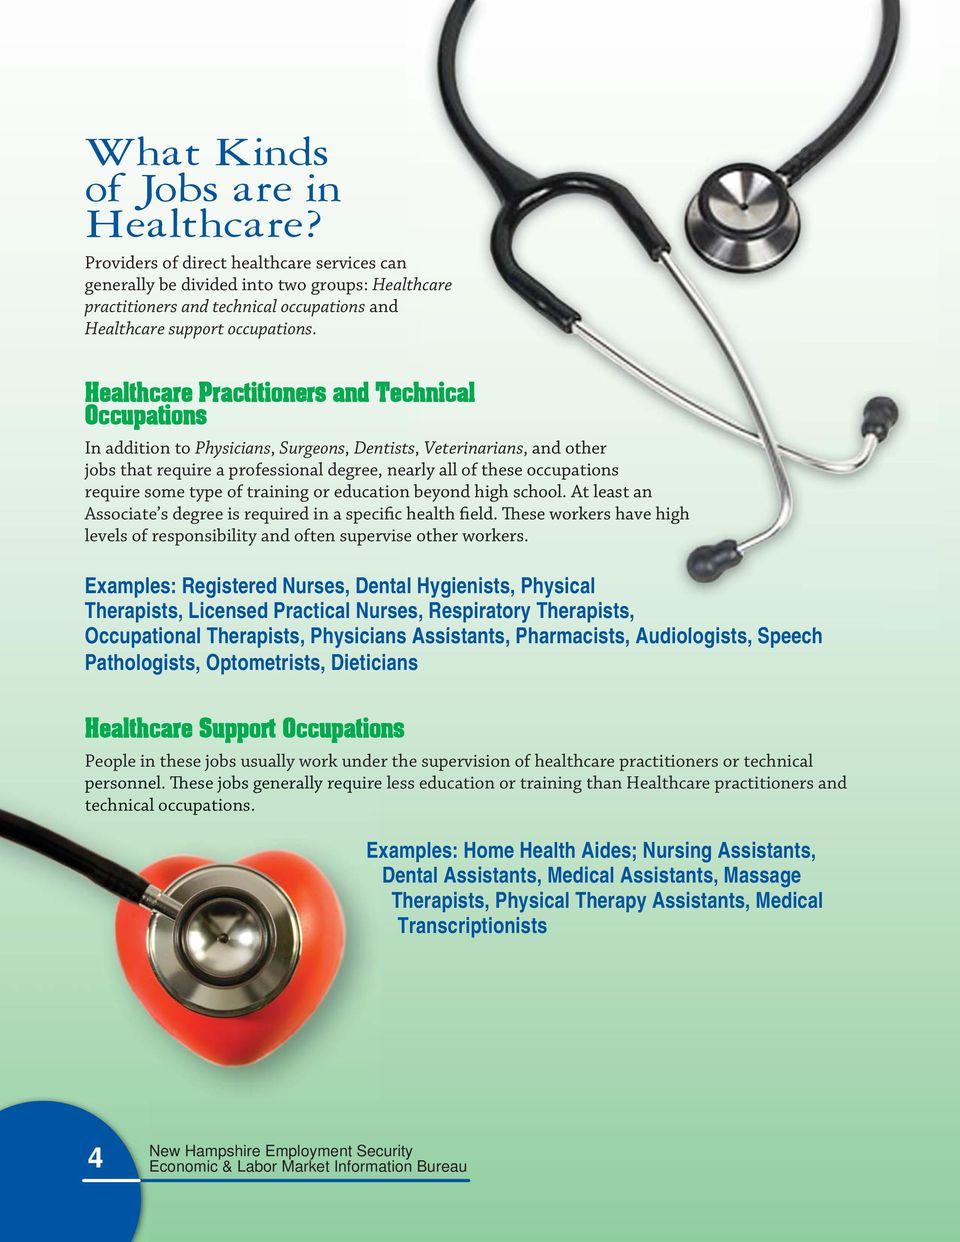 Healthcare Practitioners and Technical Occupations In addition to Physicians, Surgeons, Dentists, ts, Veterinarians, and other jobs that require a professional degree, nearly all of these occupations